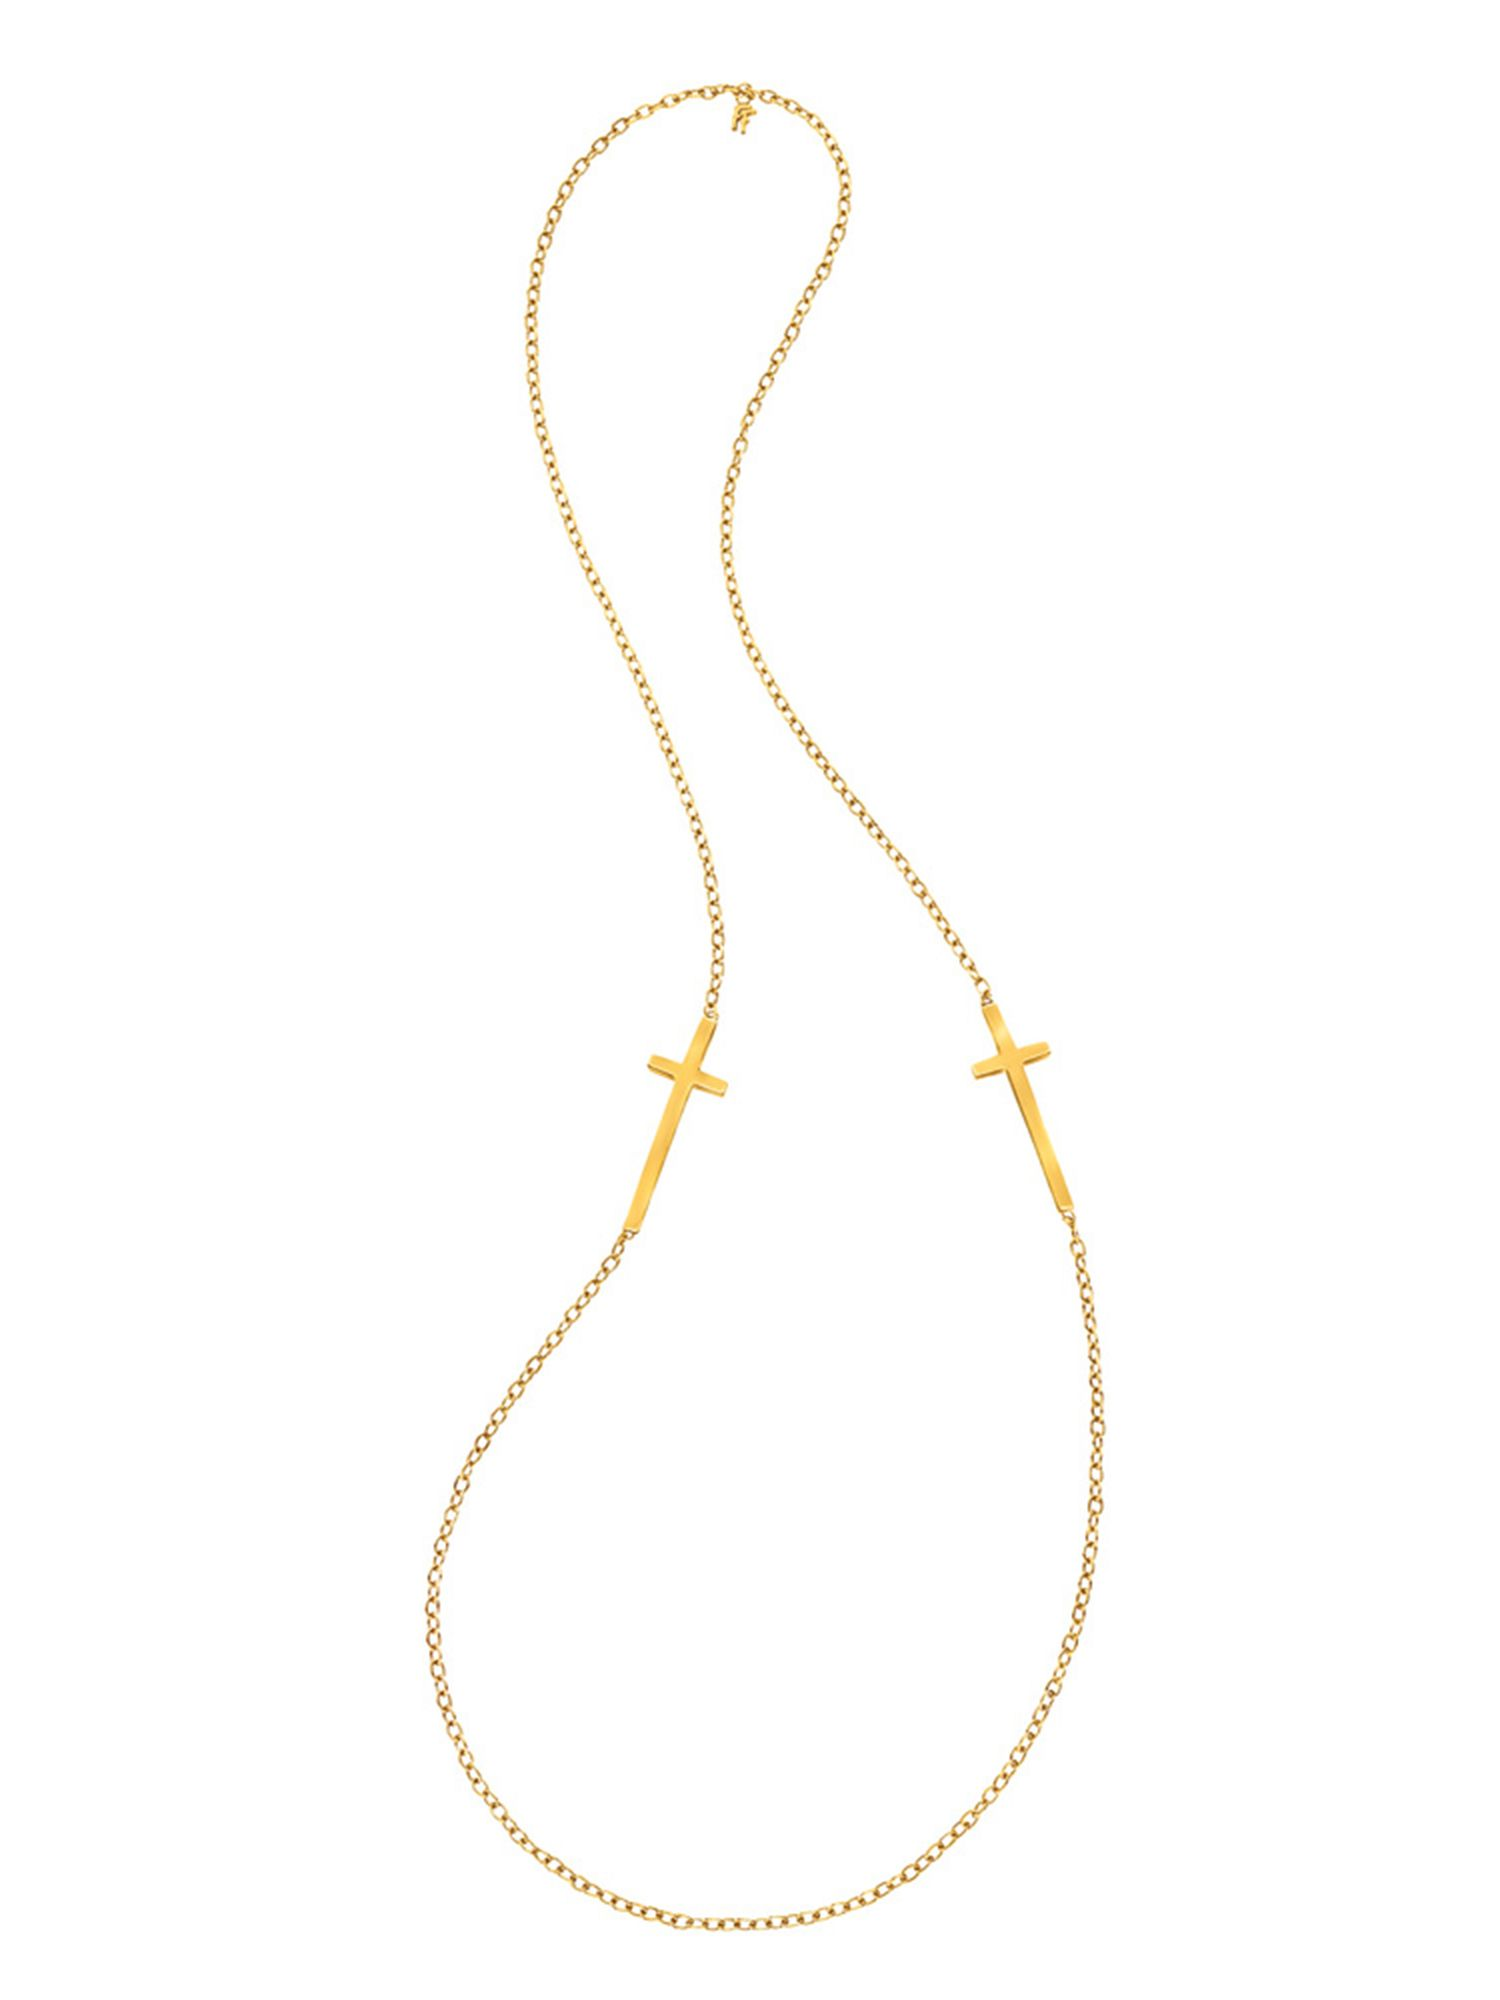 Carma necklace